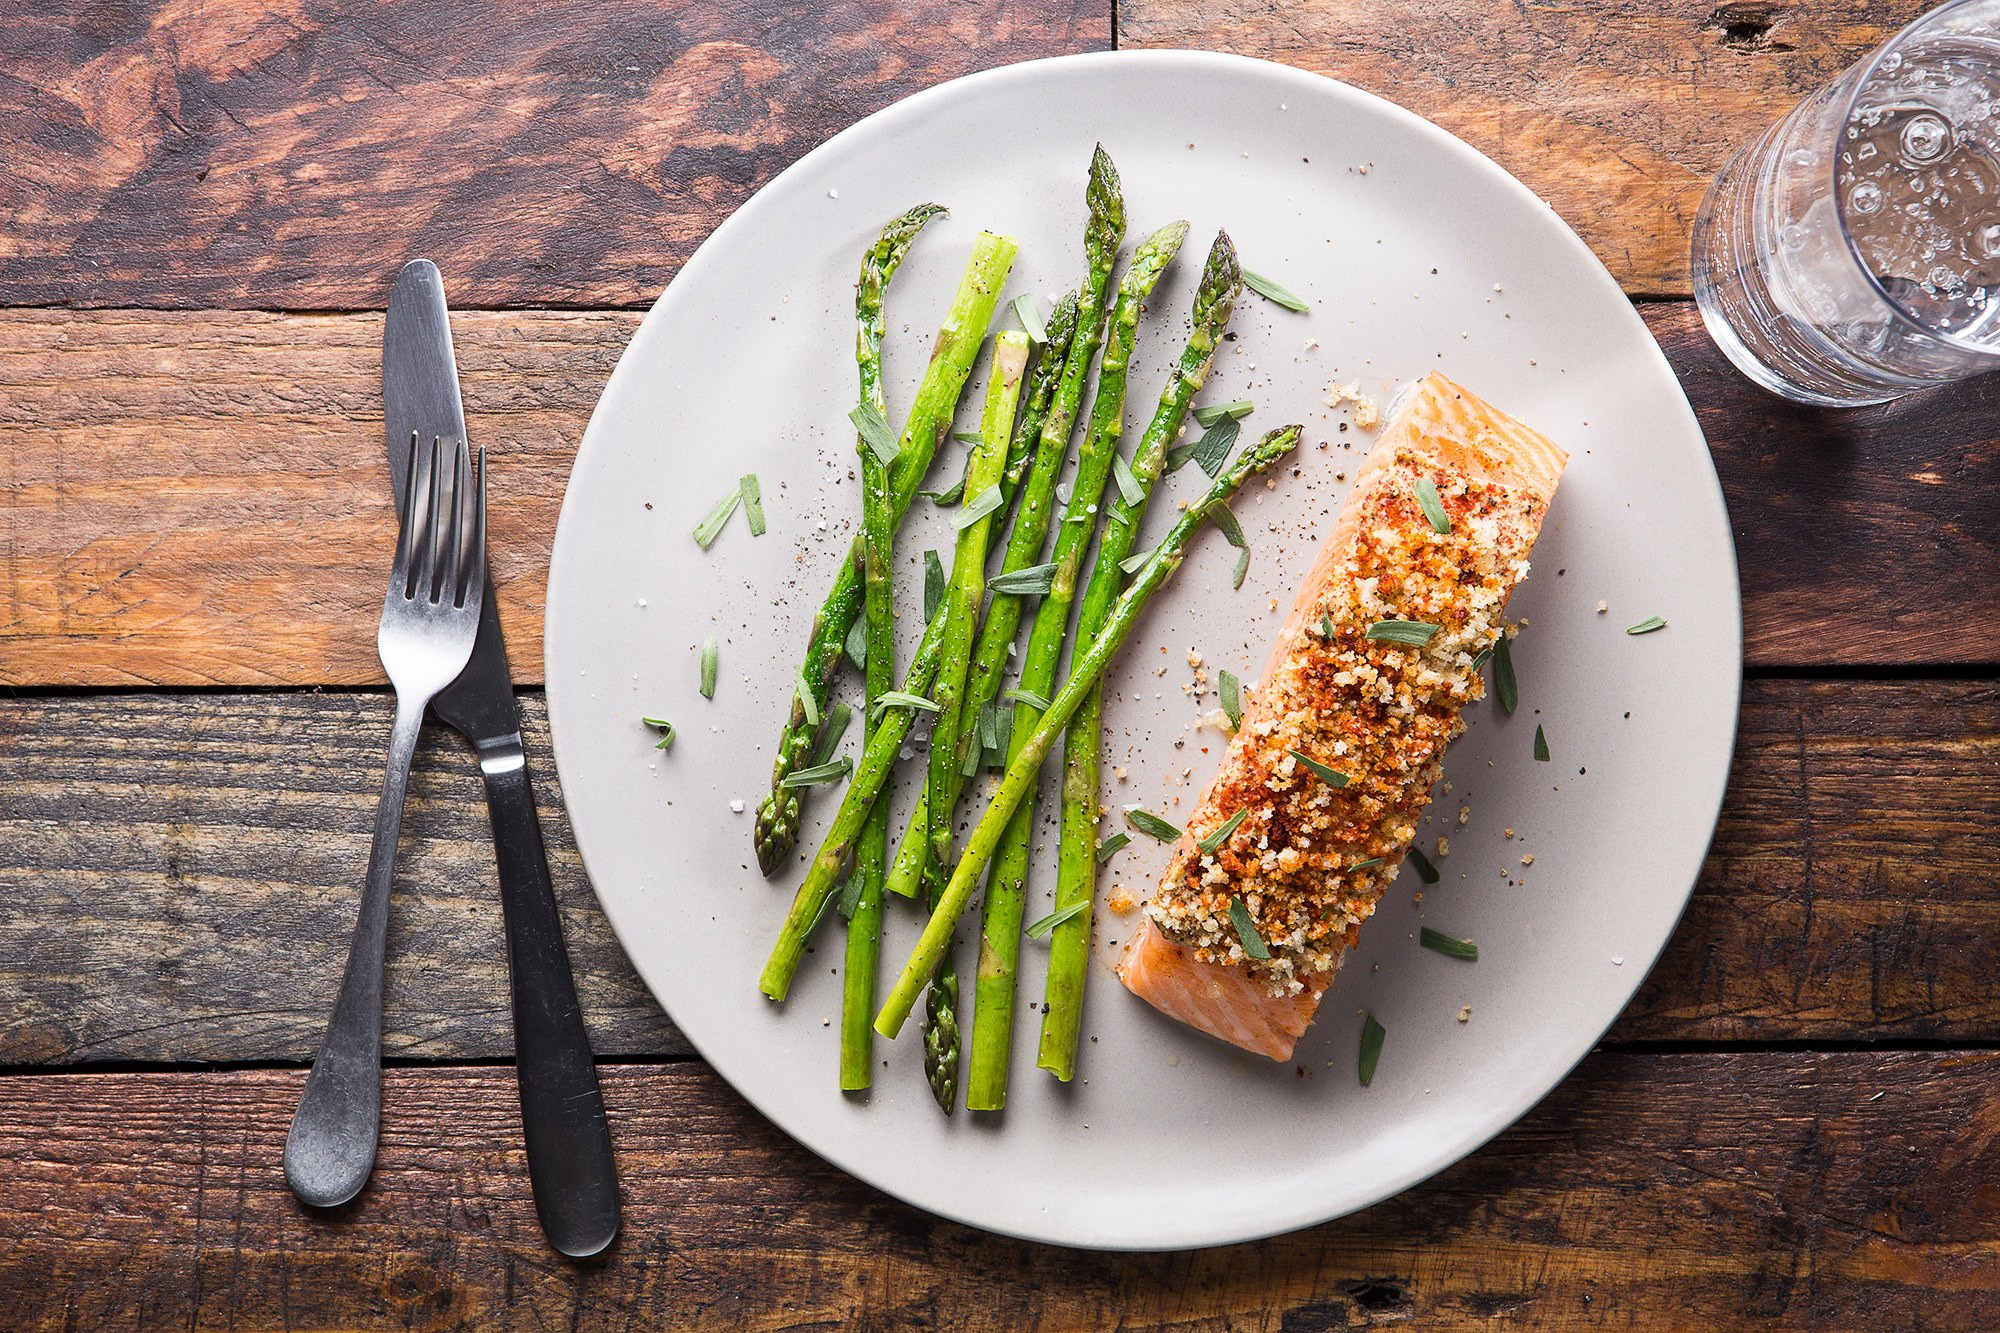 Salmon And Asparagus Recipe  Baked Mustard Crusted Salmon with Asparagus and Tarragon